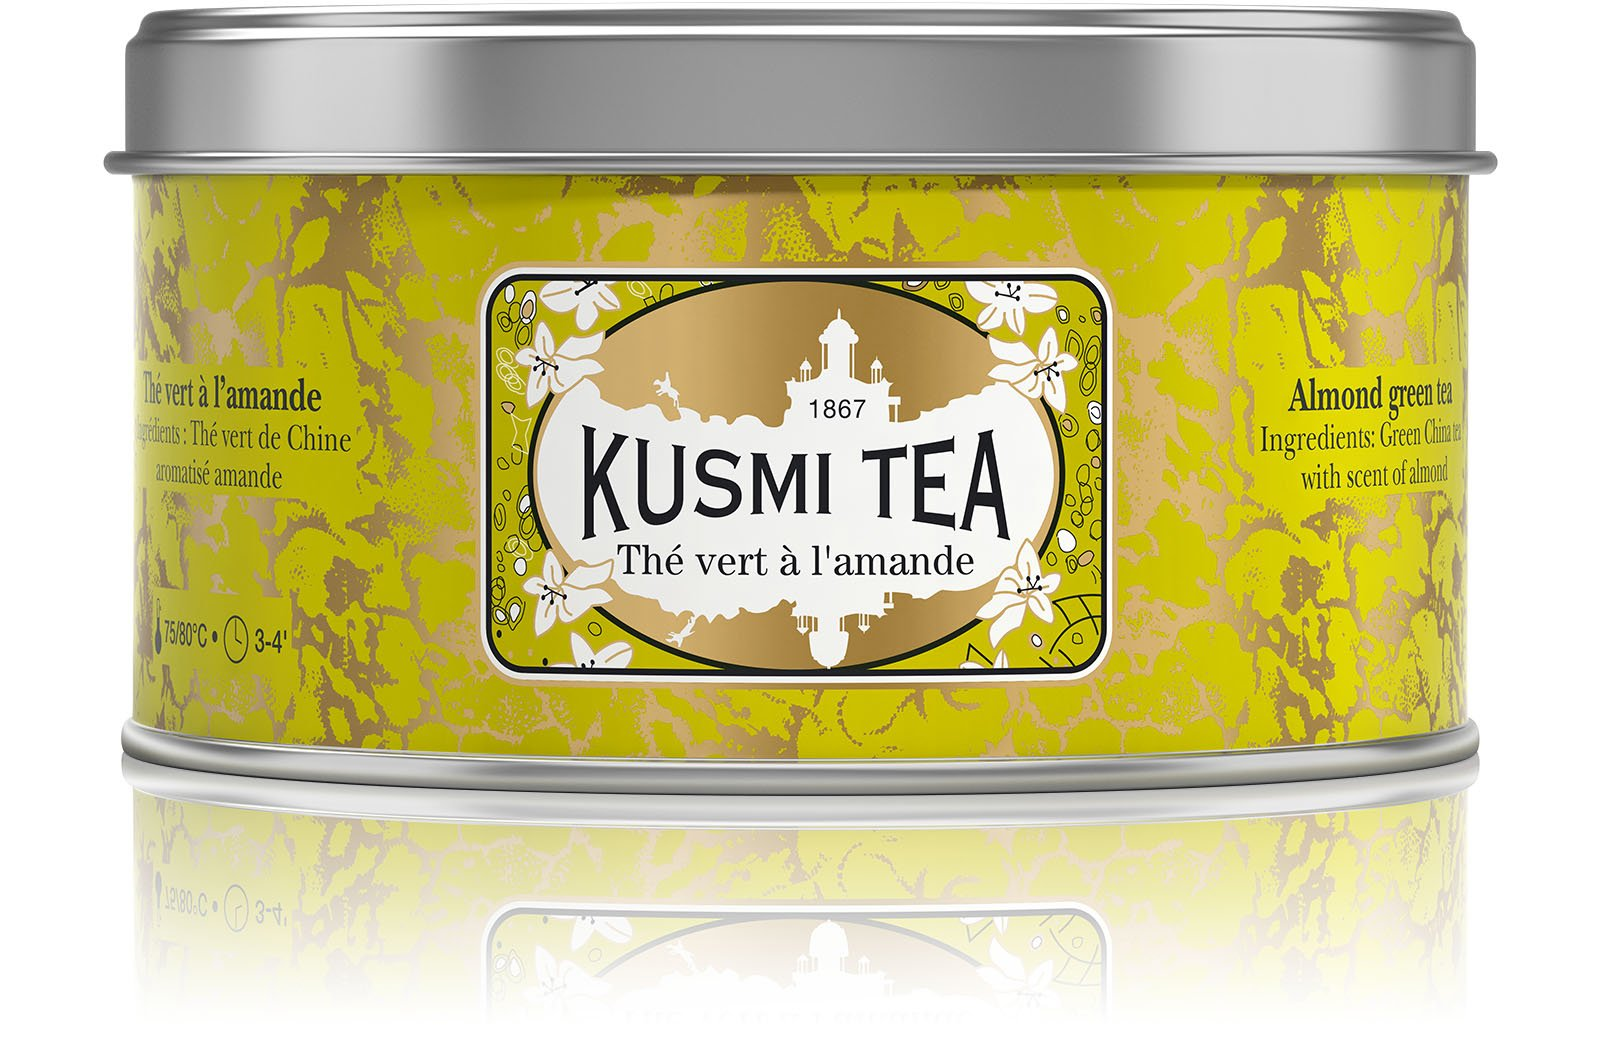 Kusmi Tea - Almond Green Tea - Smooth Chinese Green Tea with Scents of Almonds - 4.4oz of All Natural, Premium Loose Leaf Chinese Green Tea in Eco-Friendly Metal Tin (50 Servings)